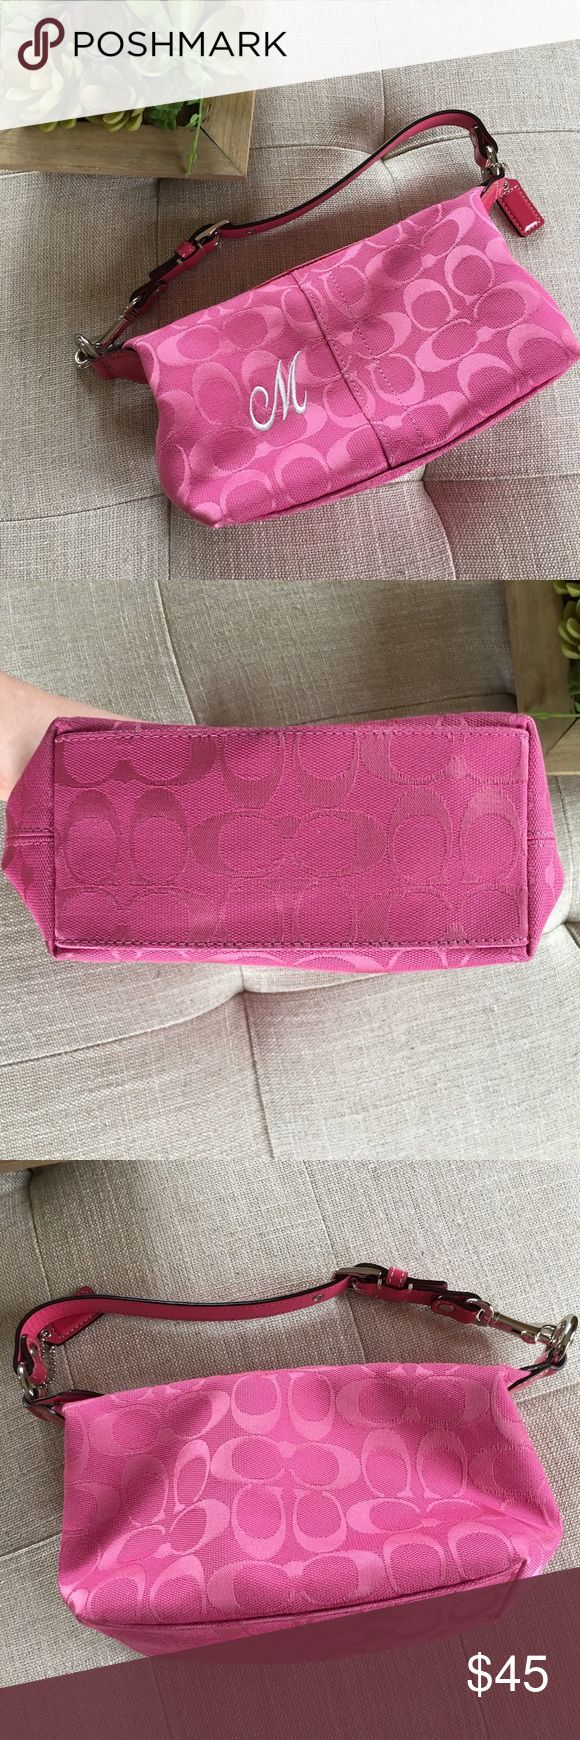 """Coach Purse Pink coach purse with the letter """"M"""" on the front. Gently used and in great condition. The strap has three lengths but it doesn't get much longer than in the picture Coach Bags Shoulder Bags"""